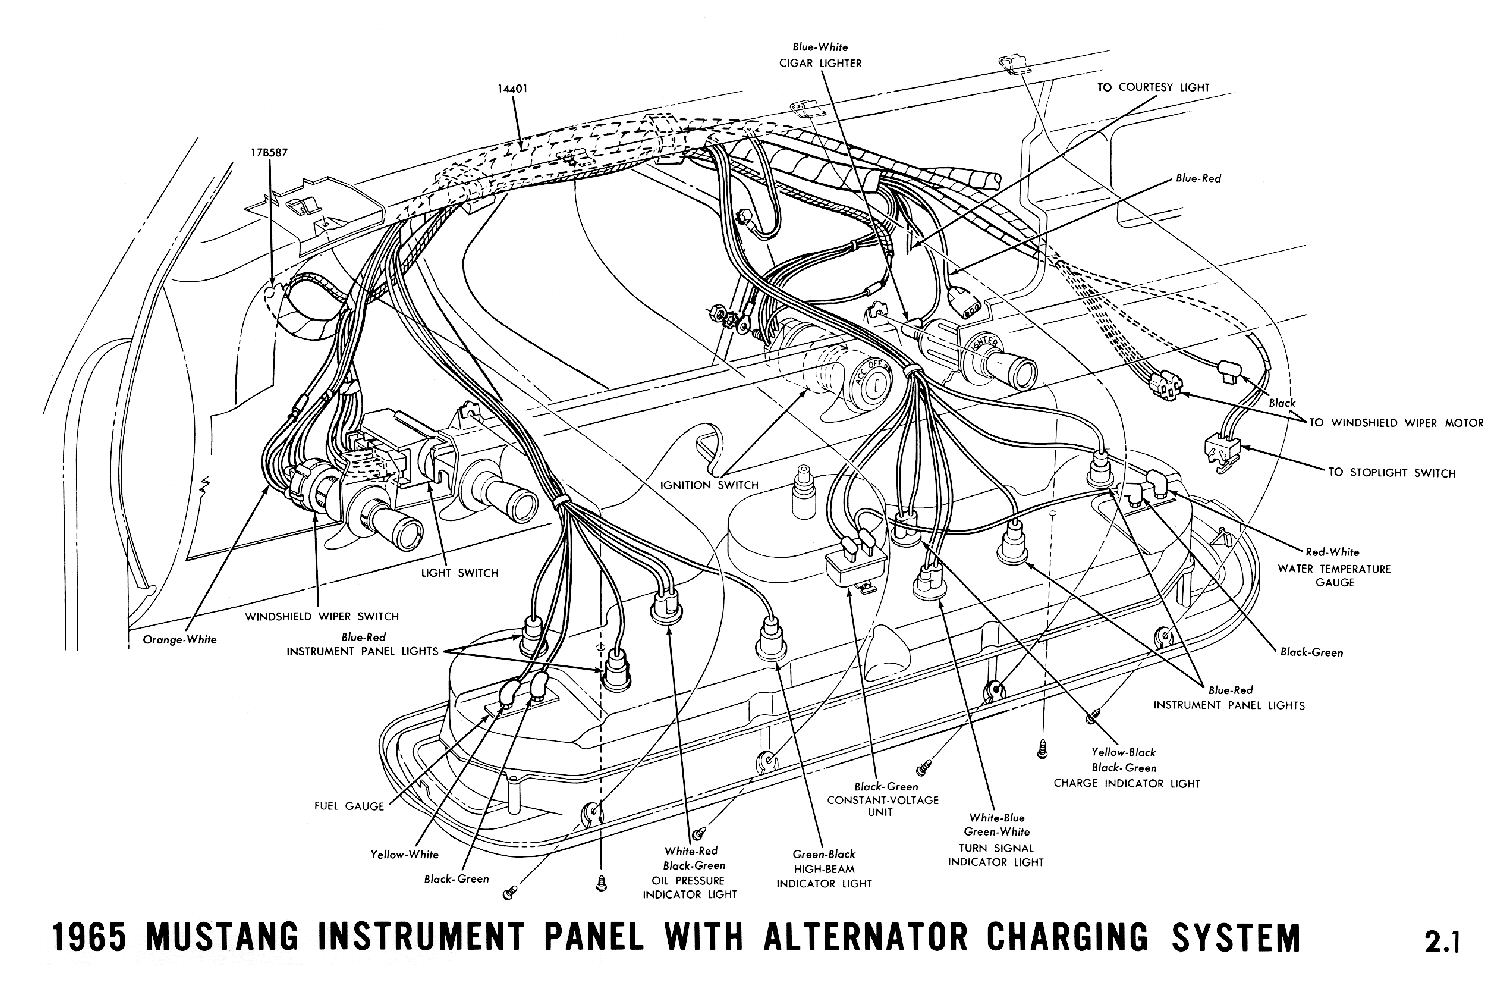 1965 mustang wiring diagrams average joe restoration rh averagejoerestoration com 1965 Mustang Color Wiring Diagram 1966 Mustang Radio Wiring Diagram